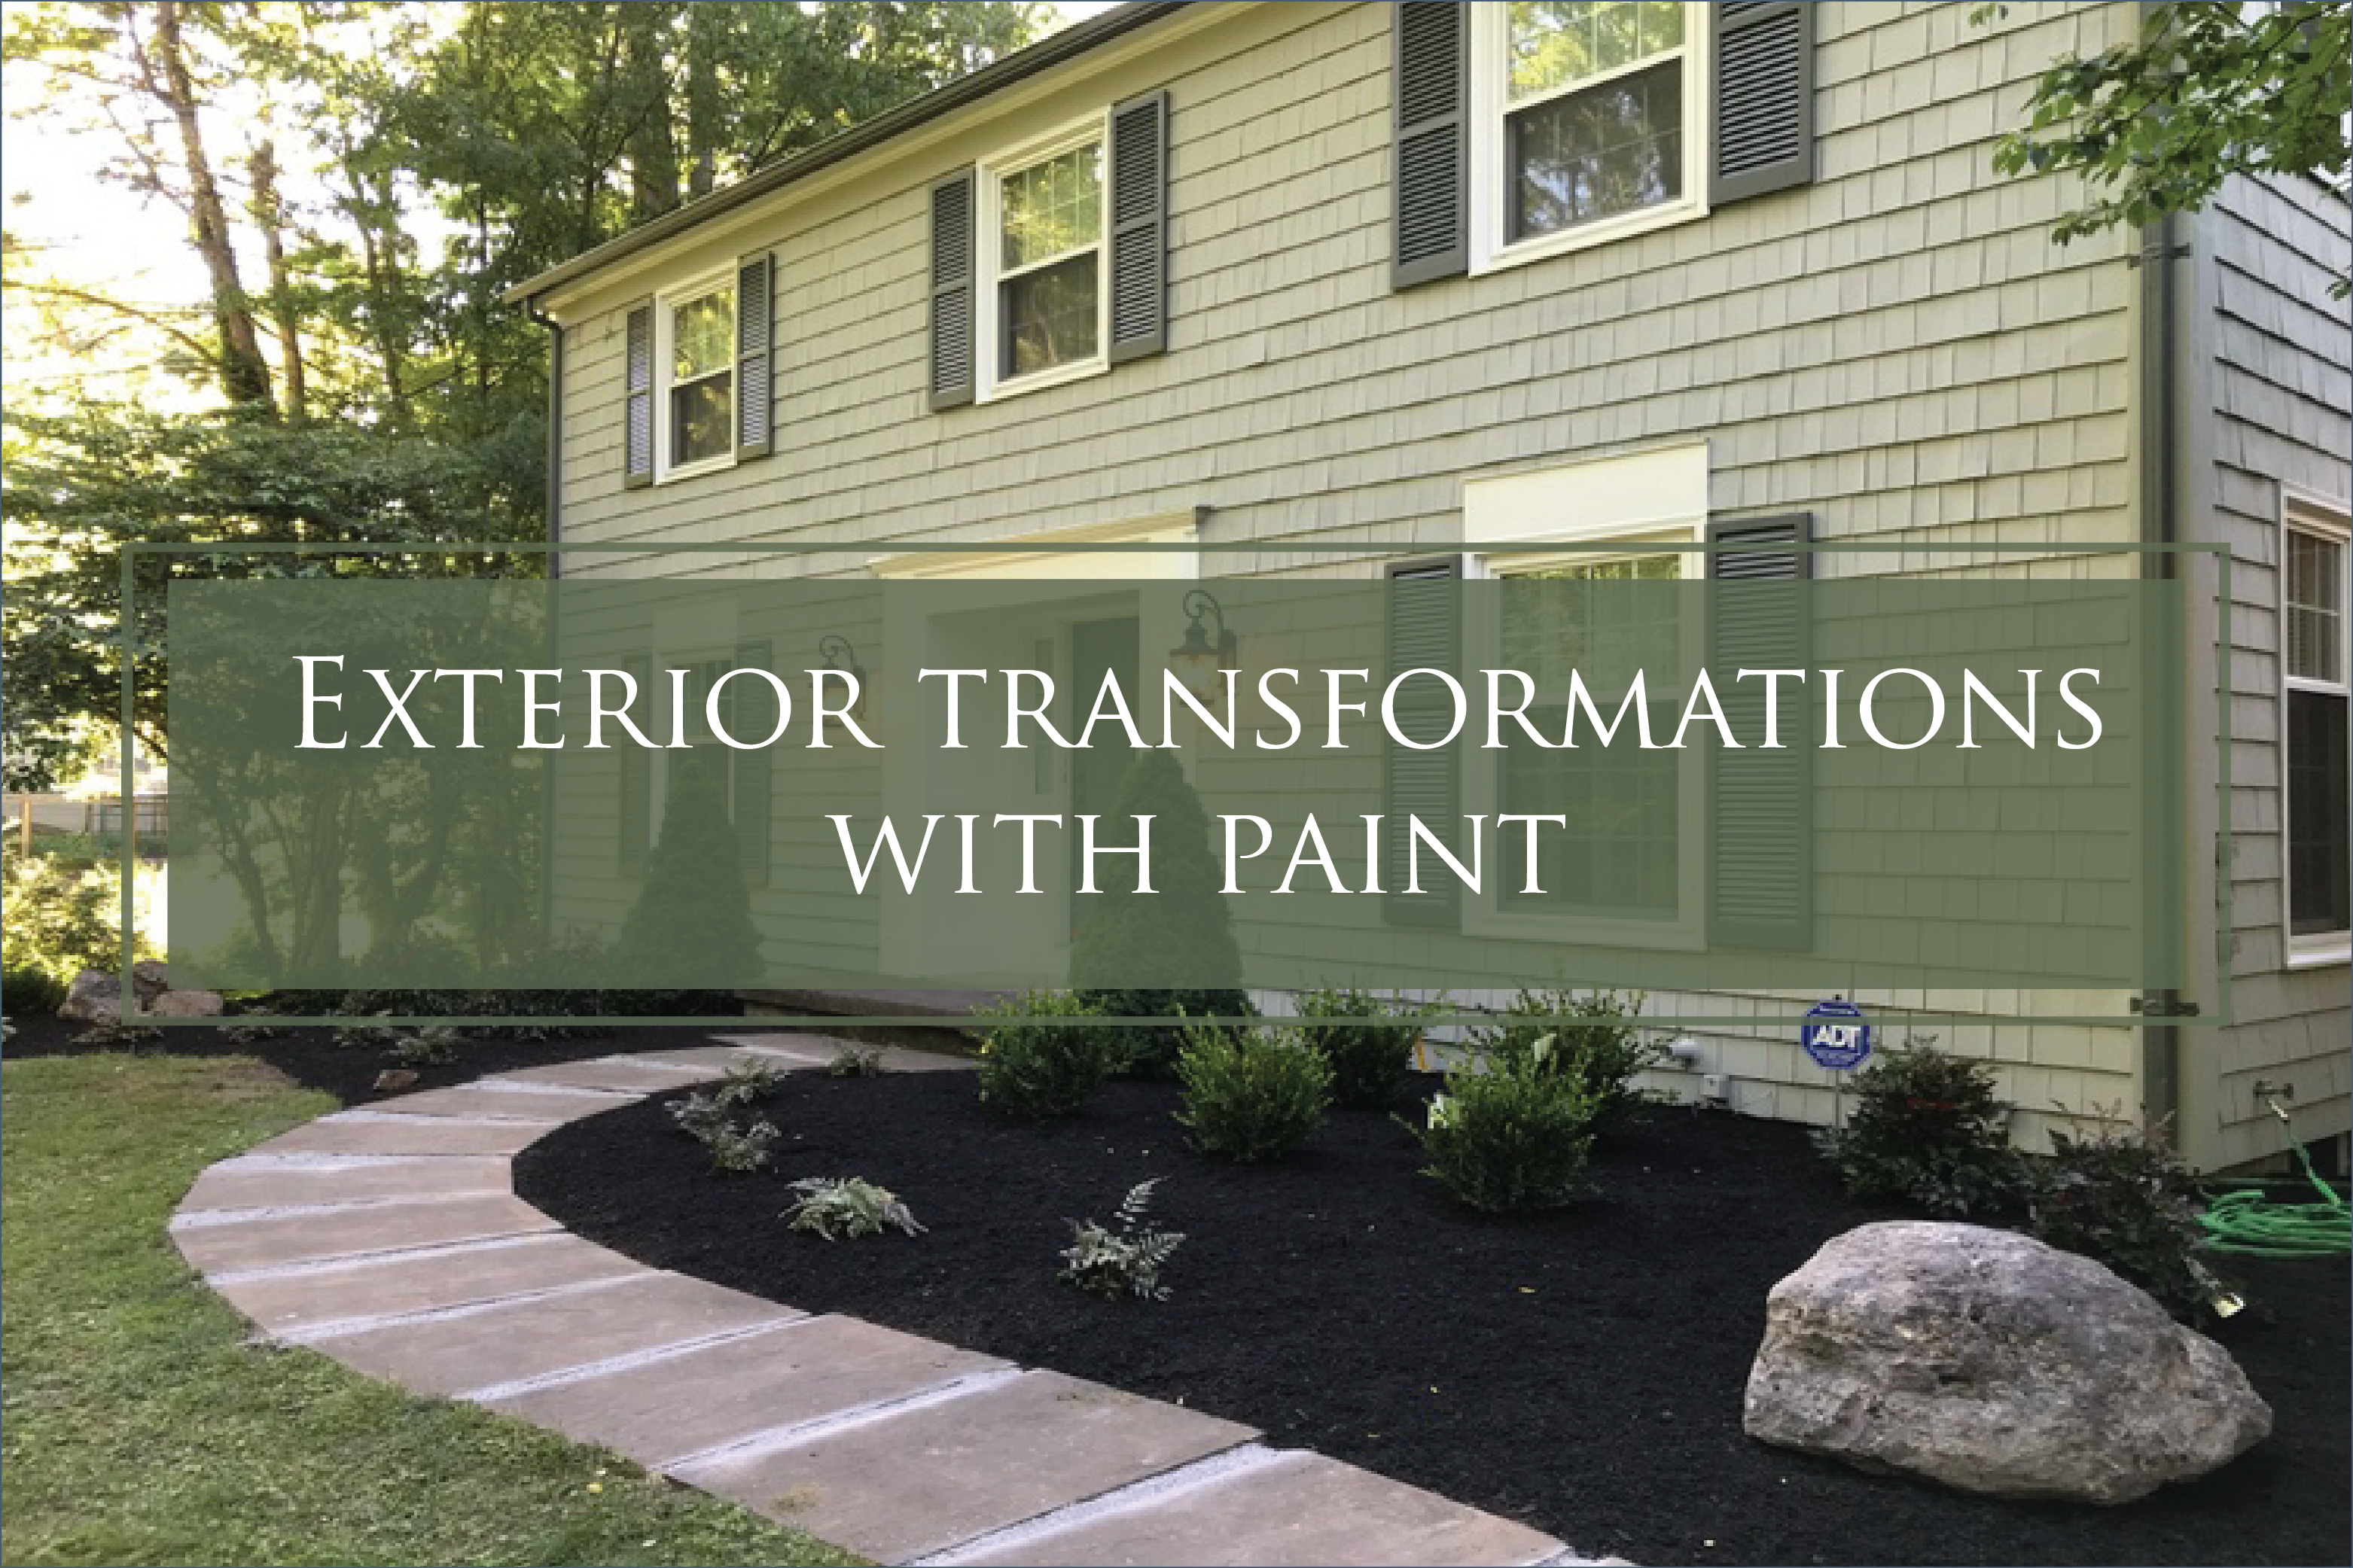 Exterior Transformations – Would You Like to Learn How to Do This?